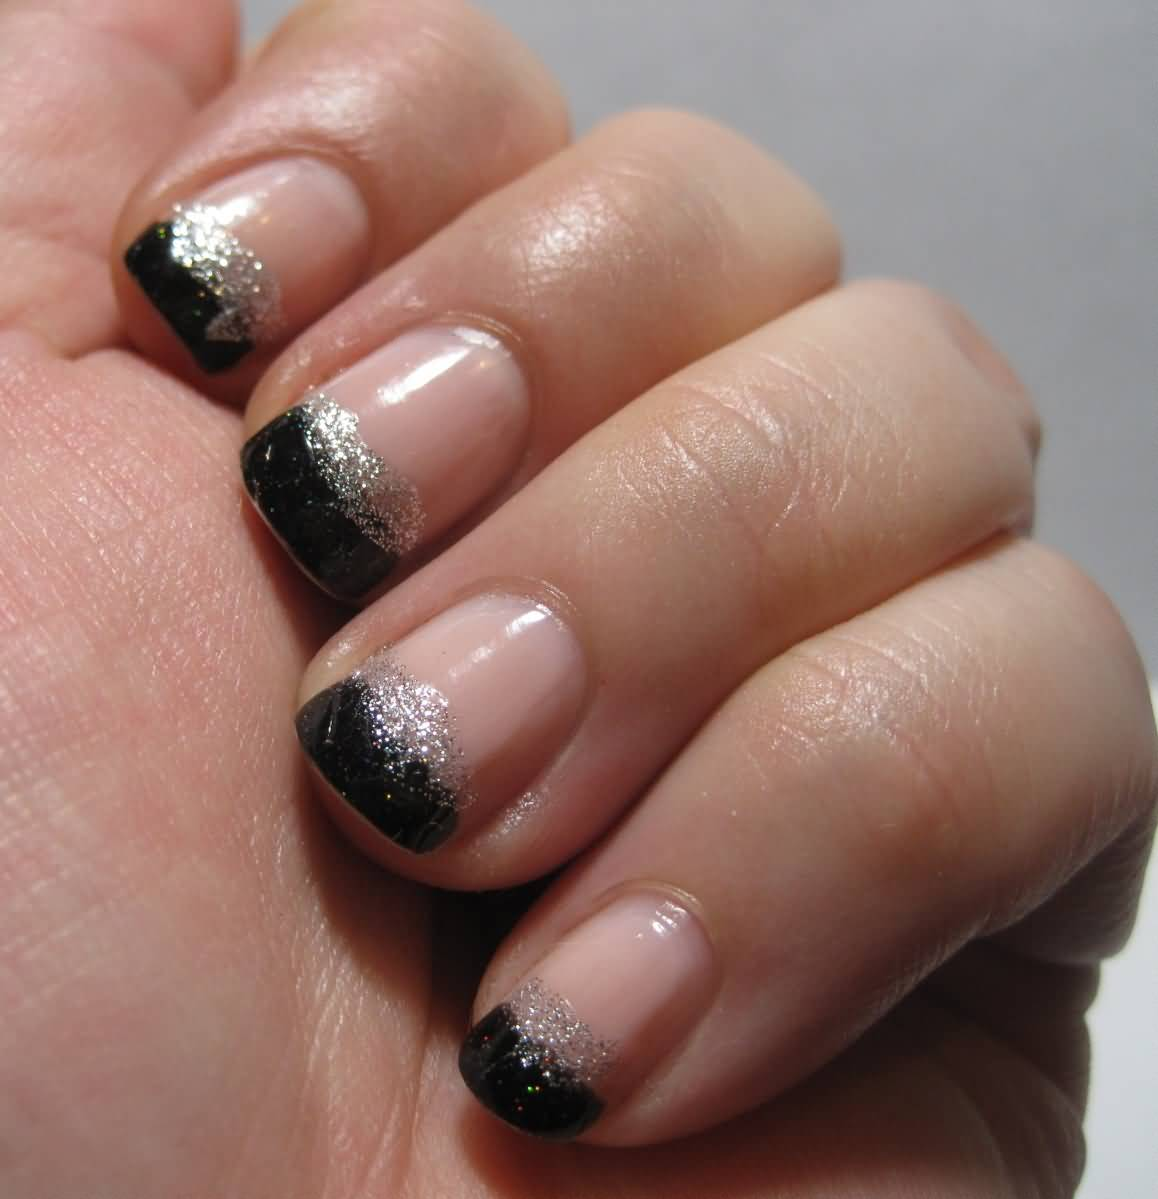 70 very stylish black french tip nail art design ideas black and silver glitter french tip nail design prinsesfo Images